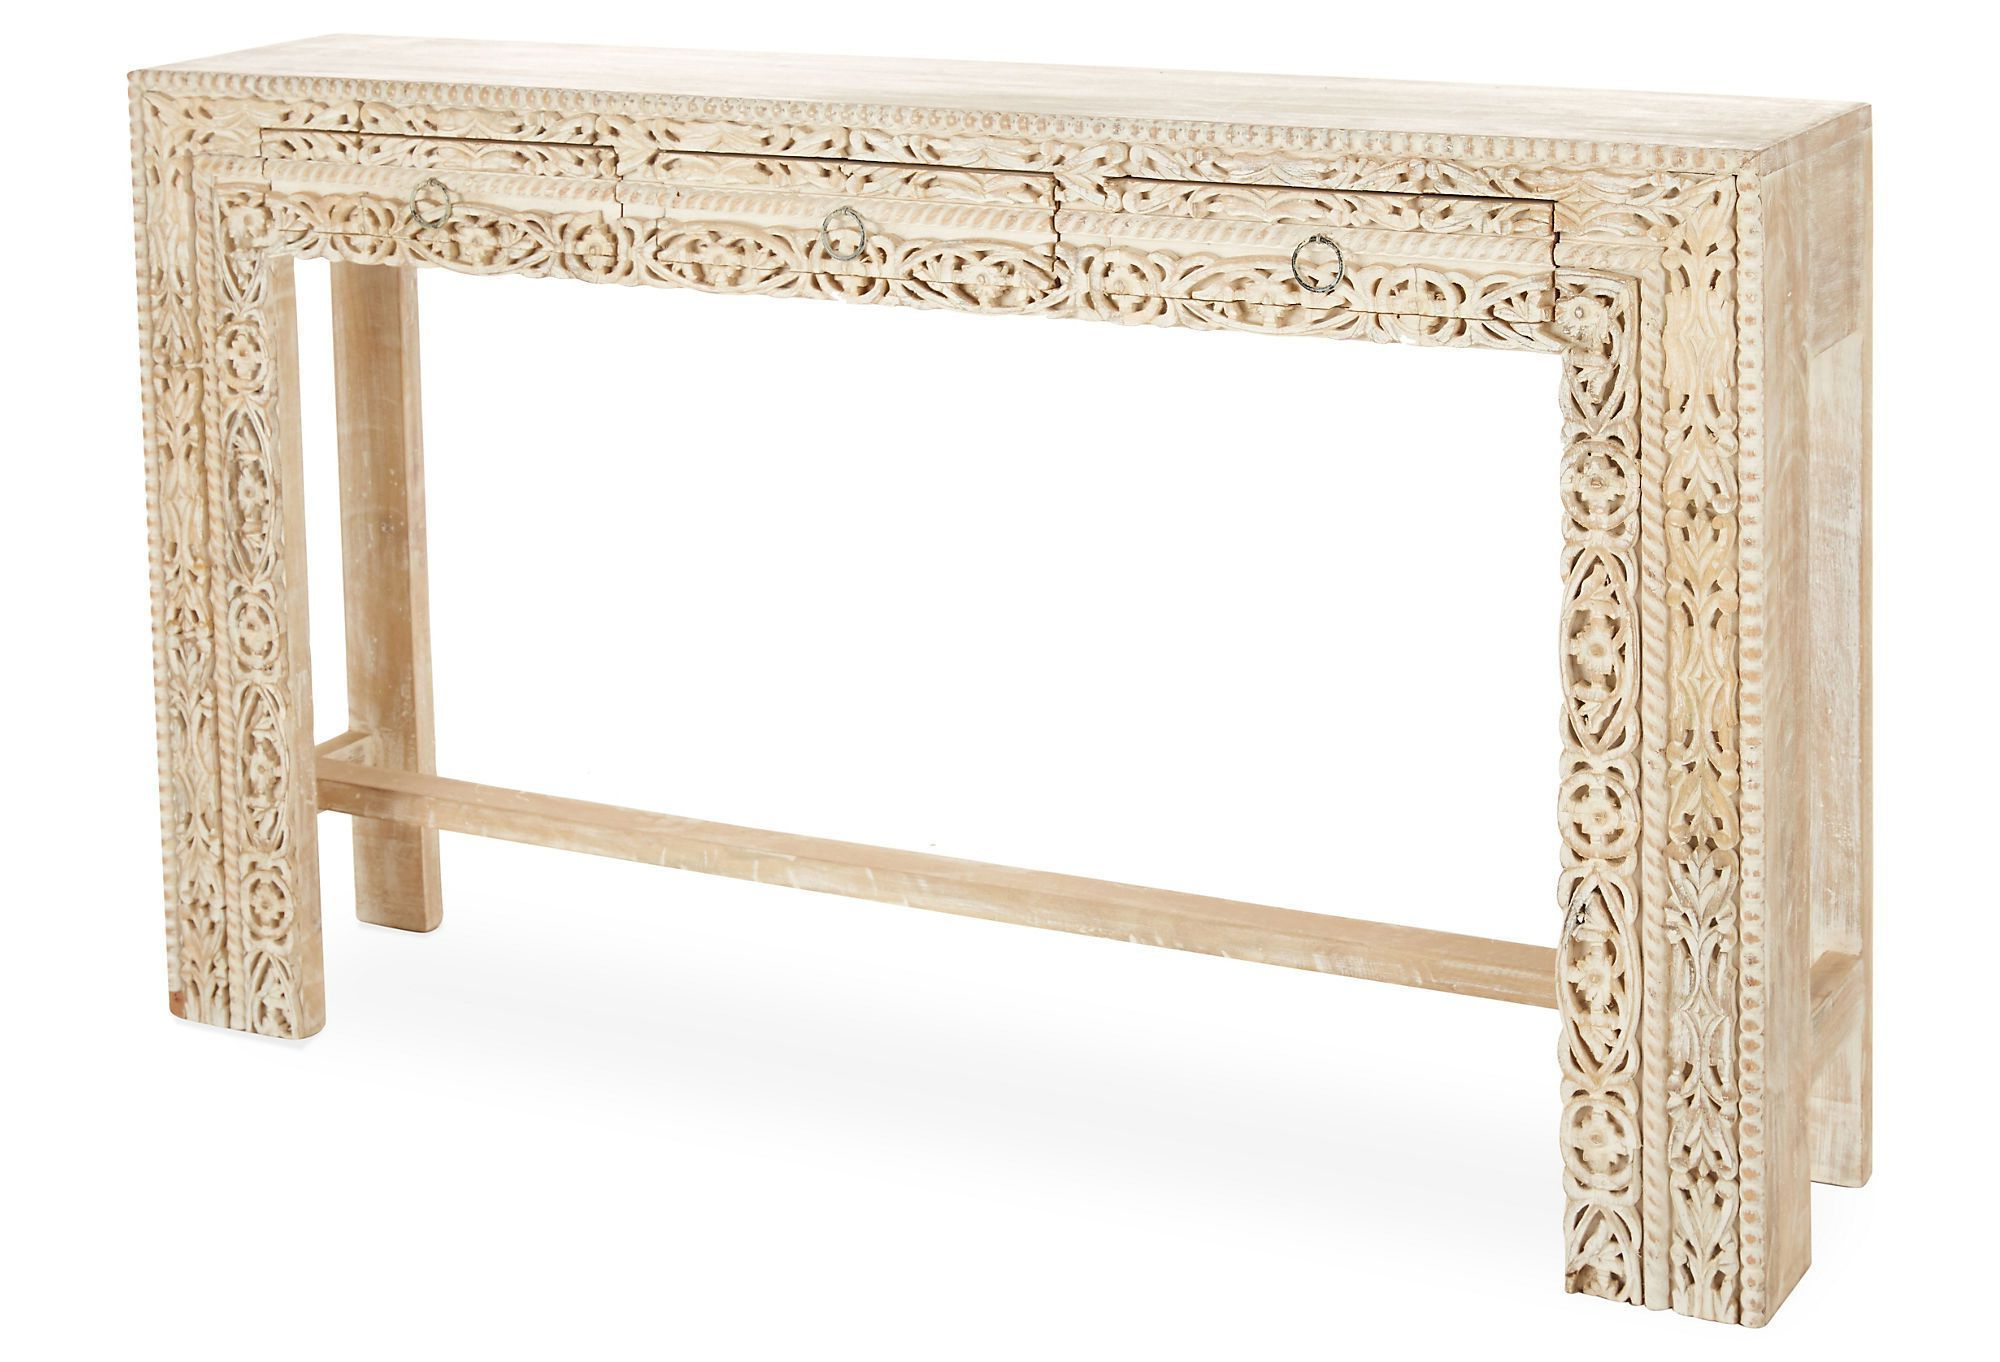 Moroccan Decor Regarding Most Up To Date Hand Carved White Wash Console Tables (View 13 of 20)